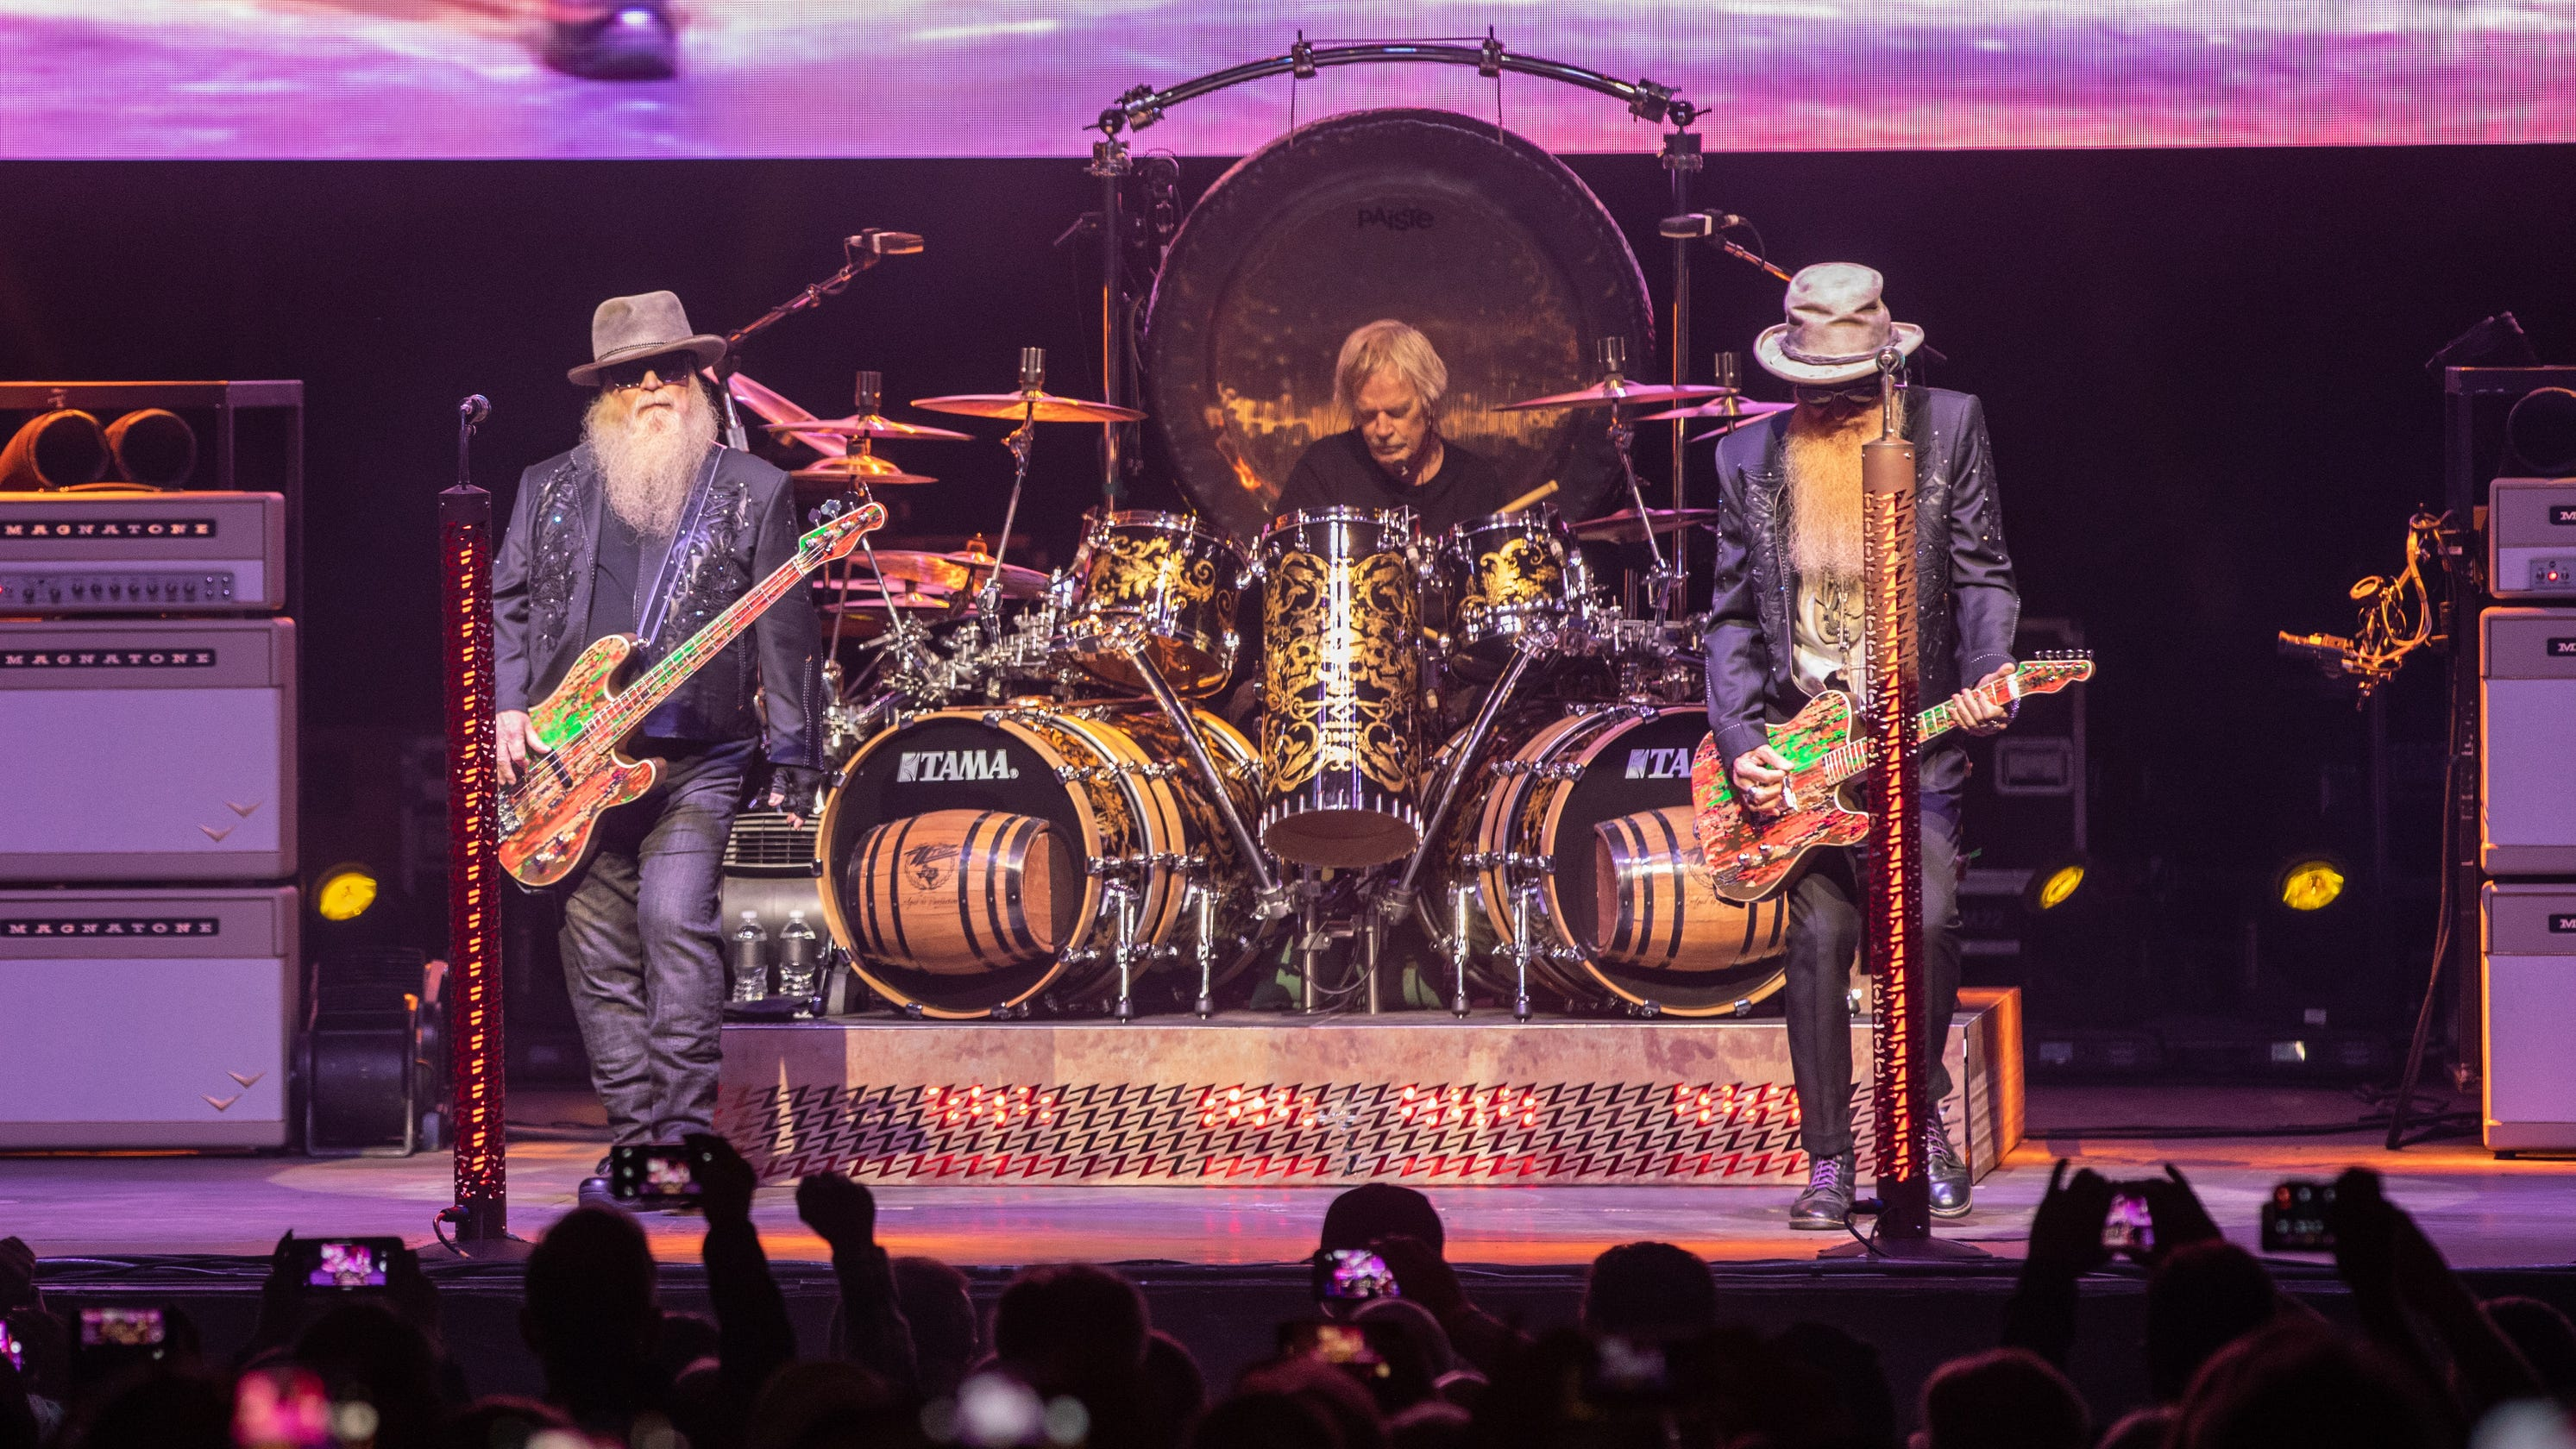 ZZ Top sharp at 50th anniversary tour in Milwaukee with